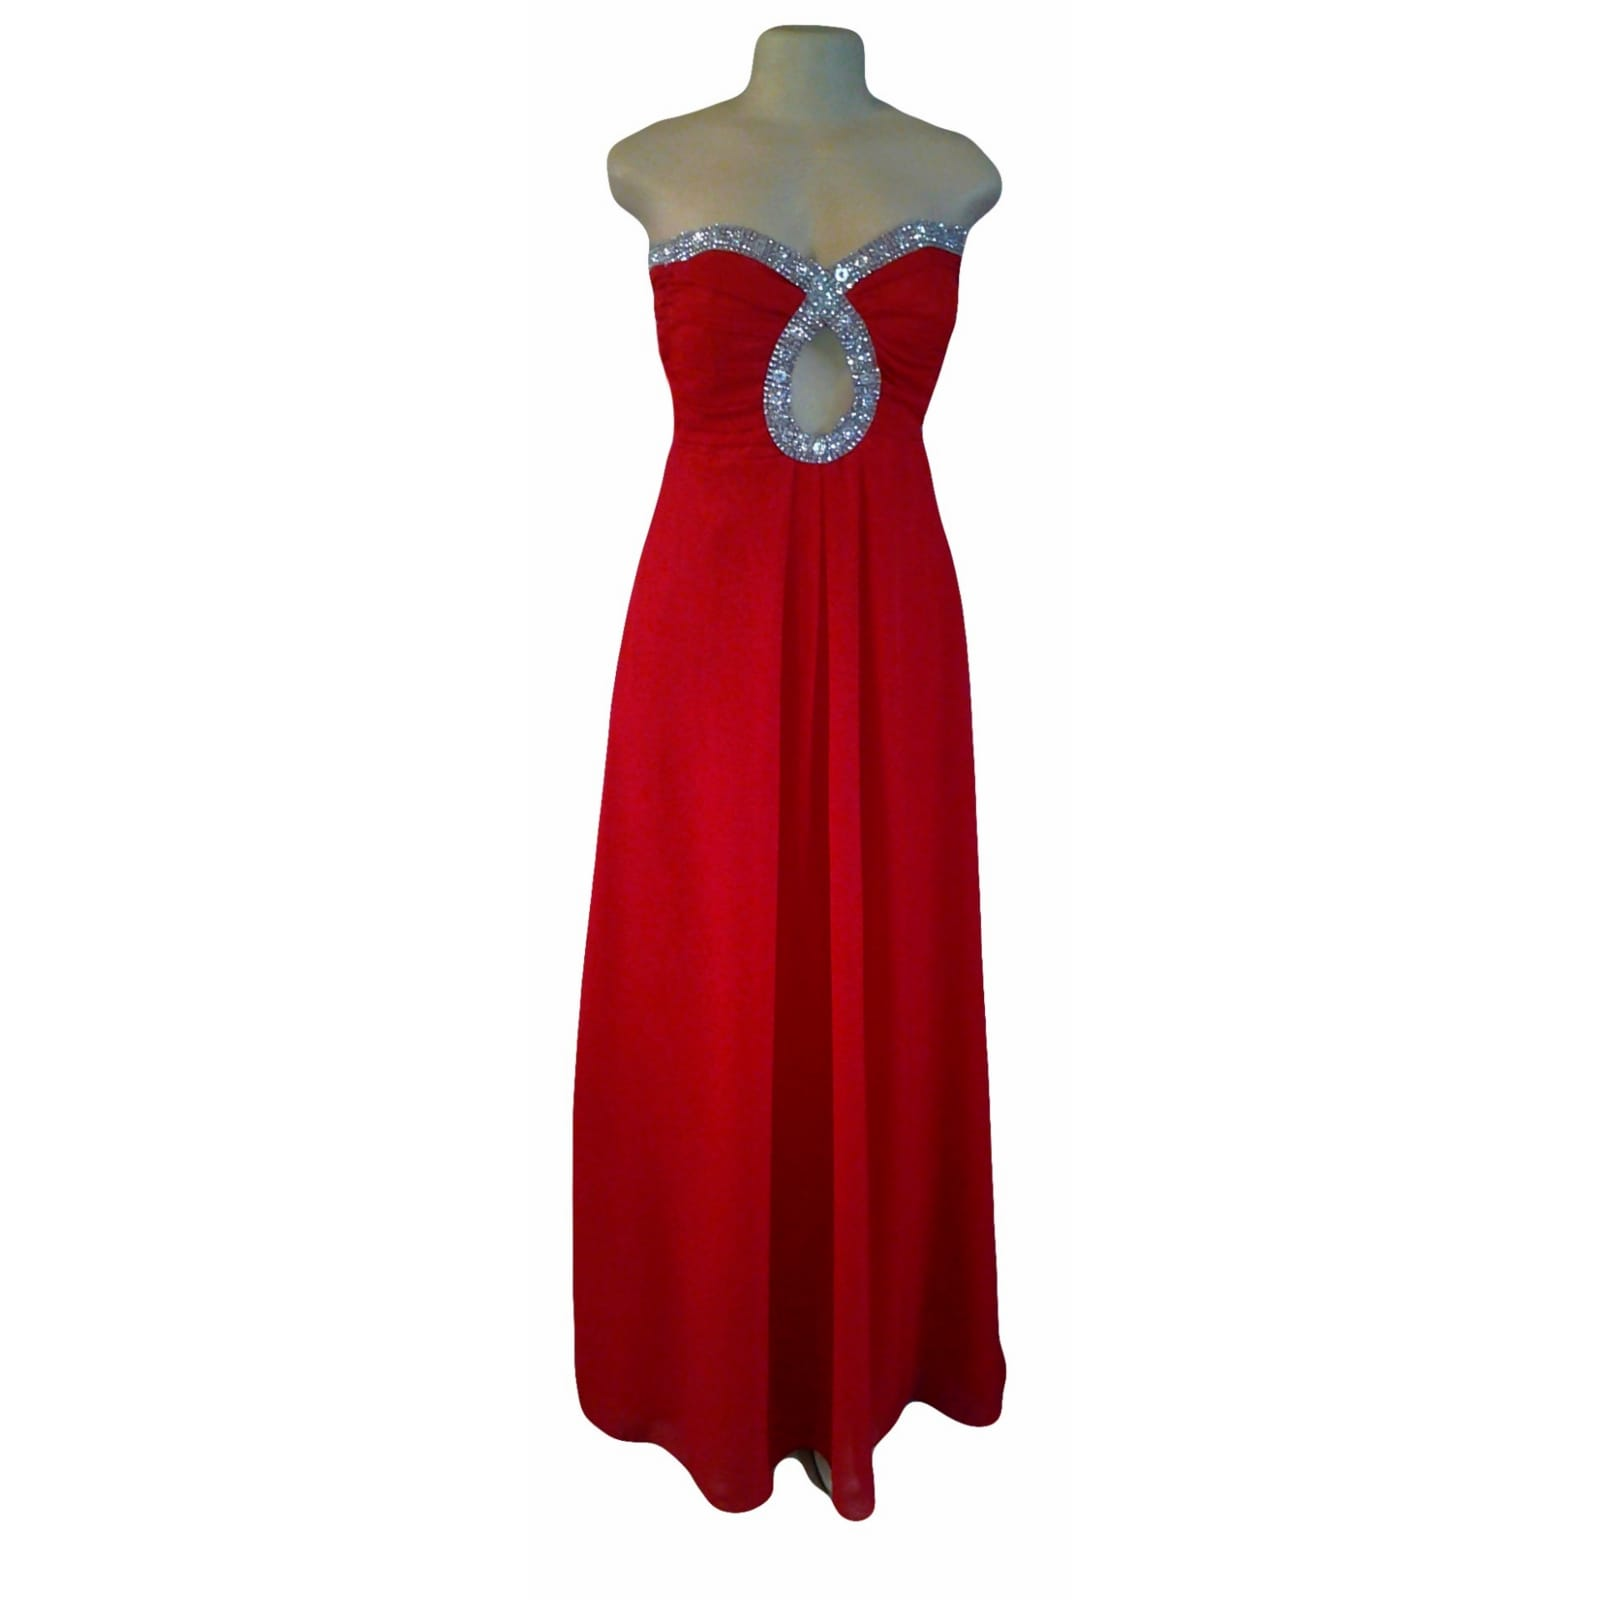 Red long flowy chiffon prom dress 4 red long flowy chiffon prom dress, with a ruched boob tube bodice with a cleavage opening detailed in silver.